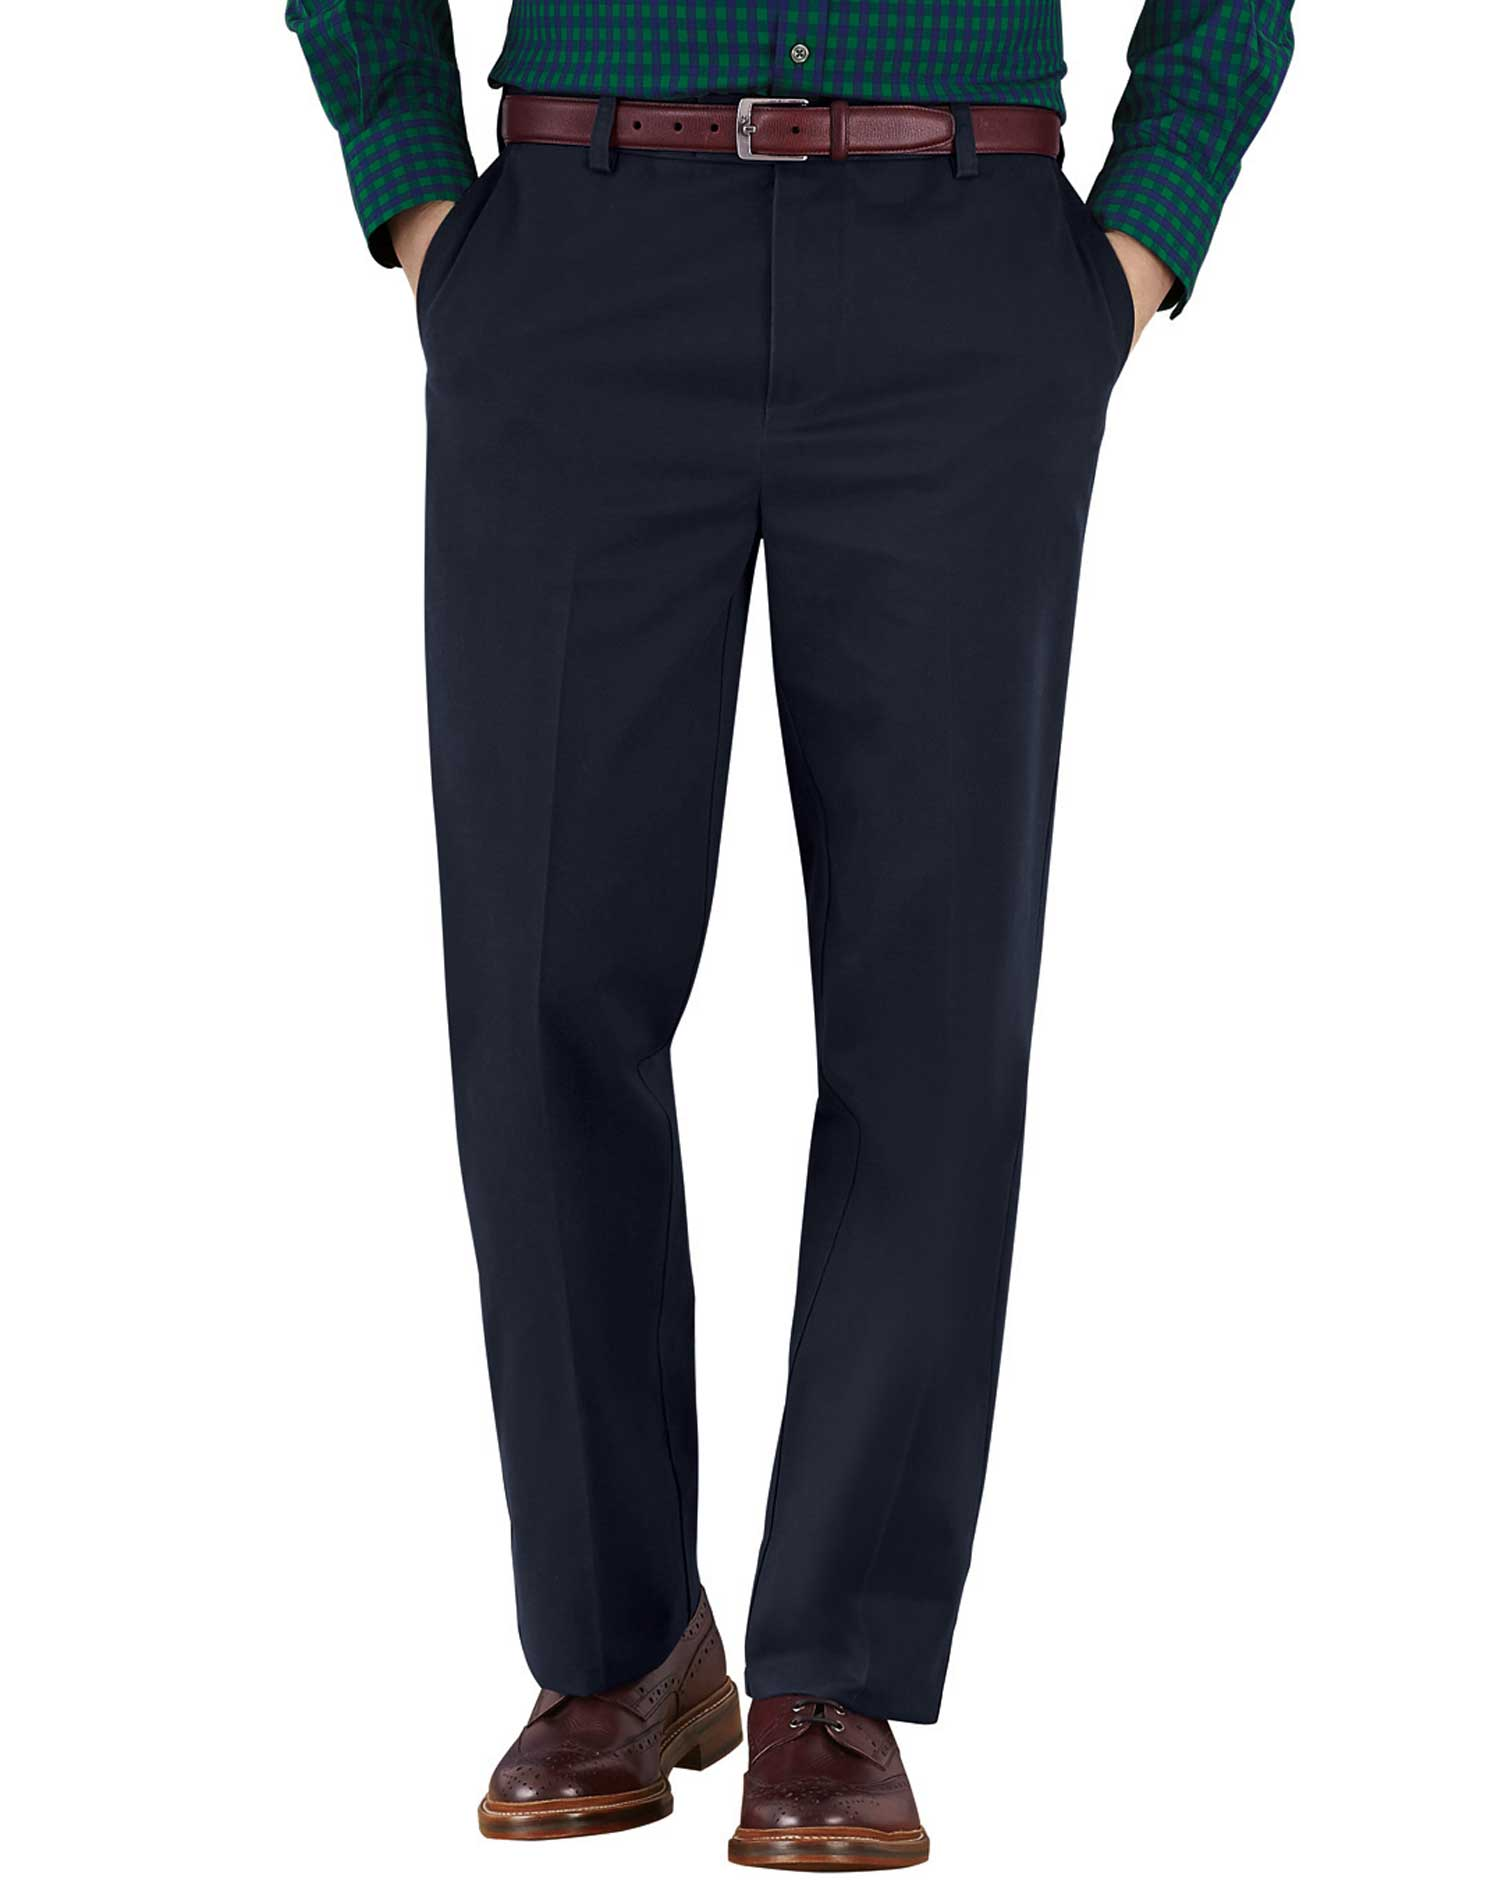 Navy Classic Fit Flat Front Non-Iron Cotton Chino Trousers Size W38 L32 by Charles Tyrwhitt